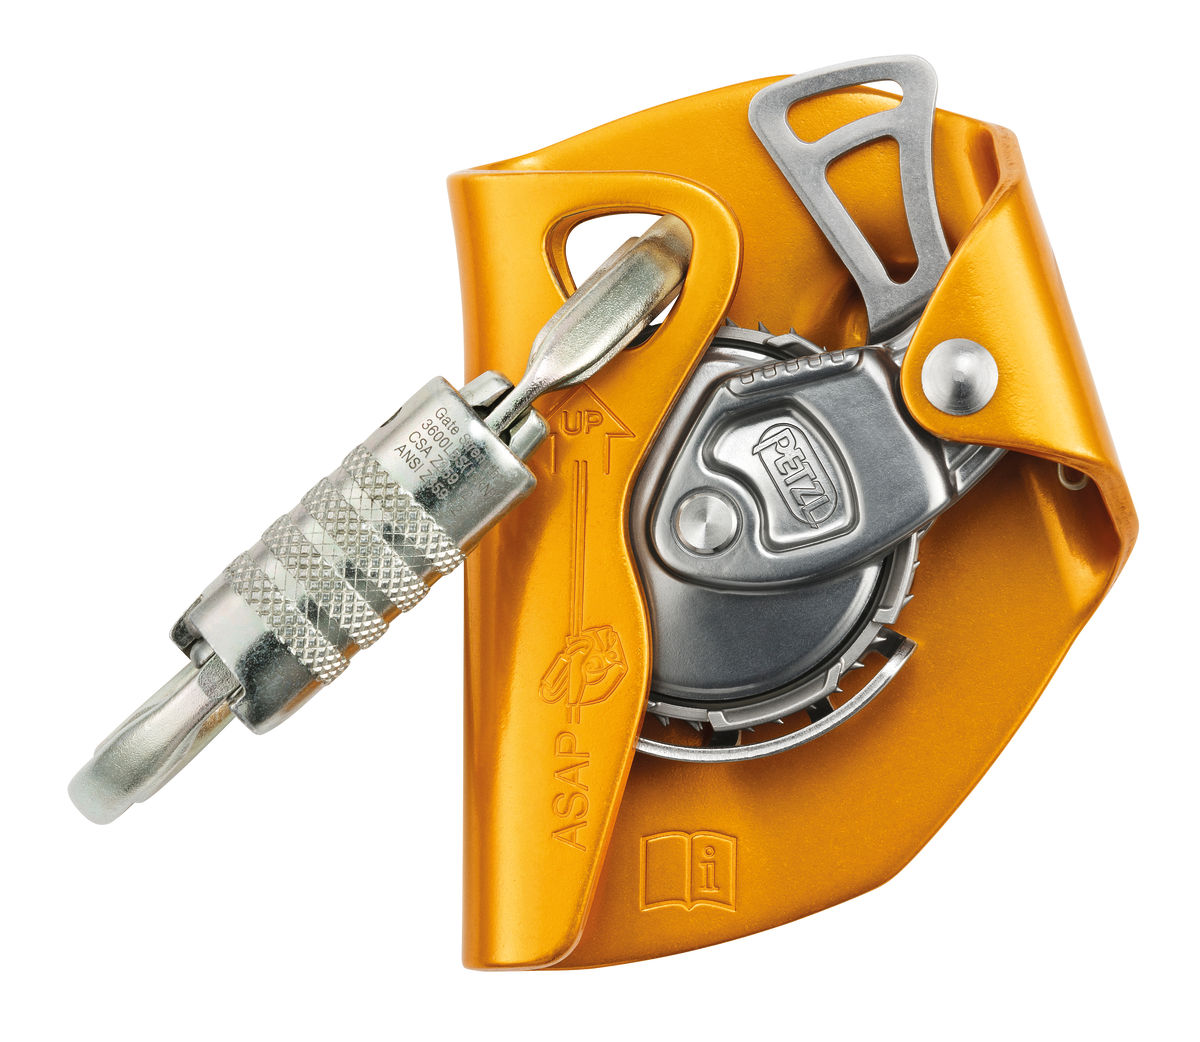 ASAP INTERNATIONAL mobile fall arrester with OXAN carabiner